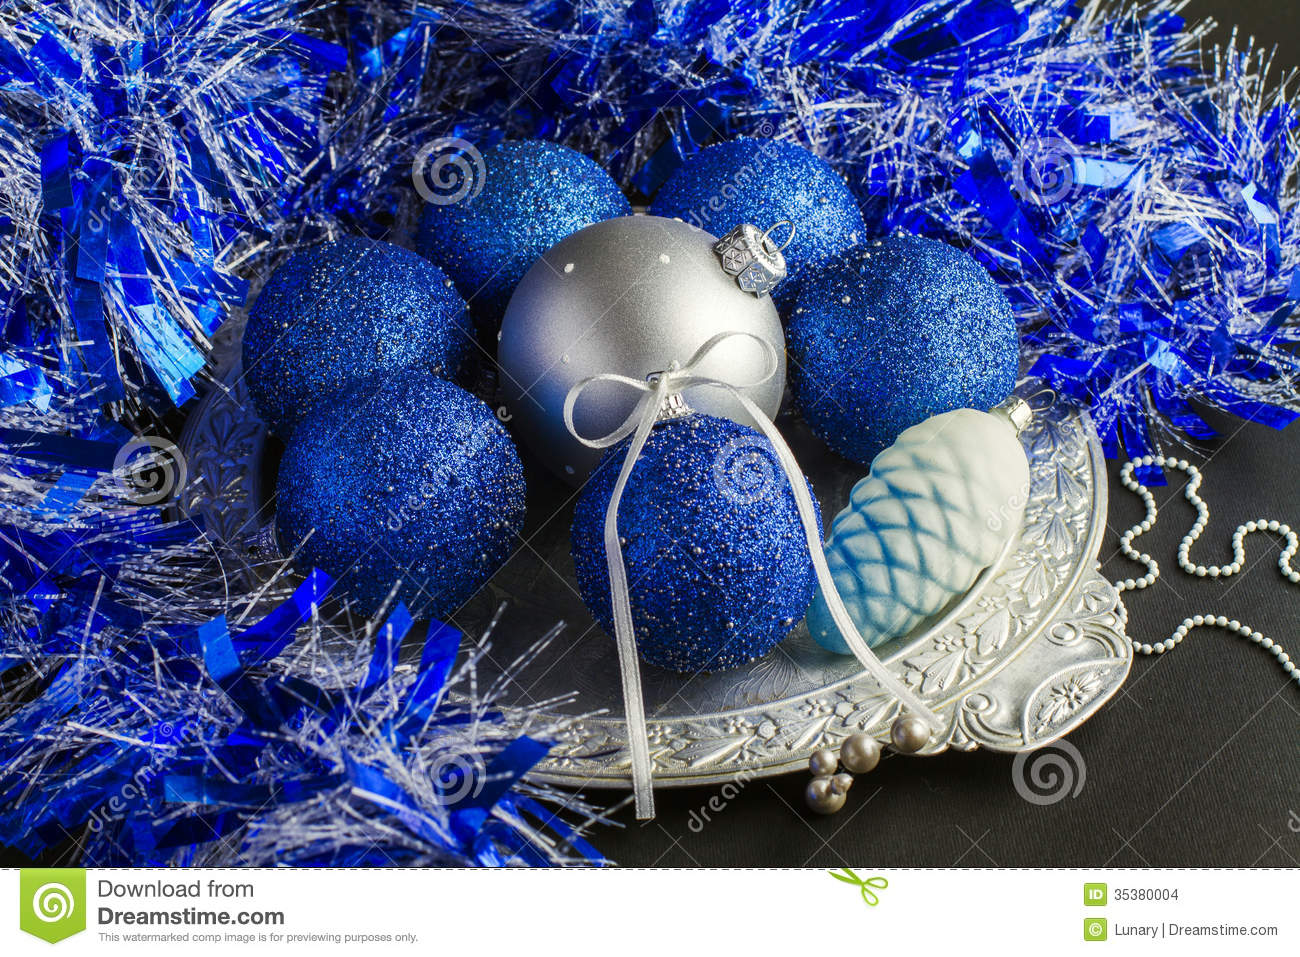 Blue Christmas Decorations Stock Images - Image: 35380004